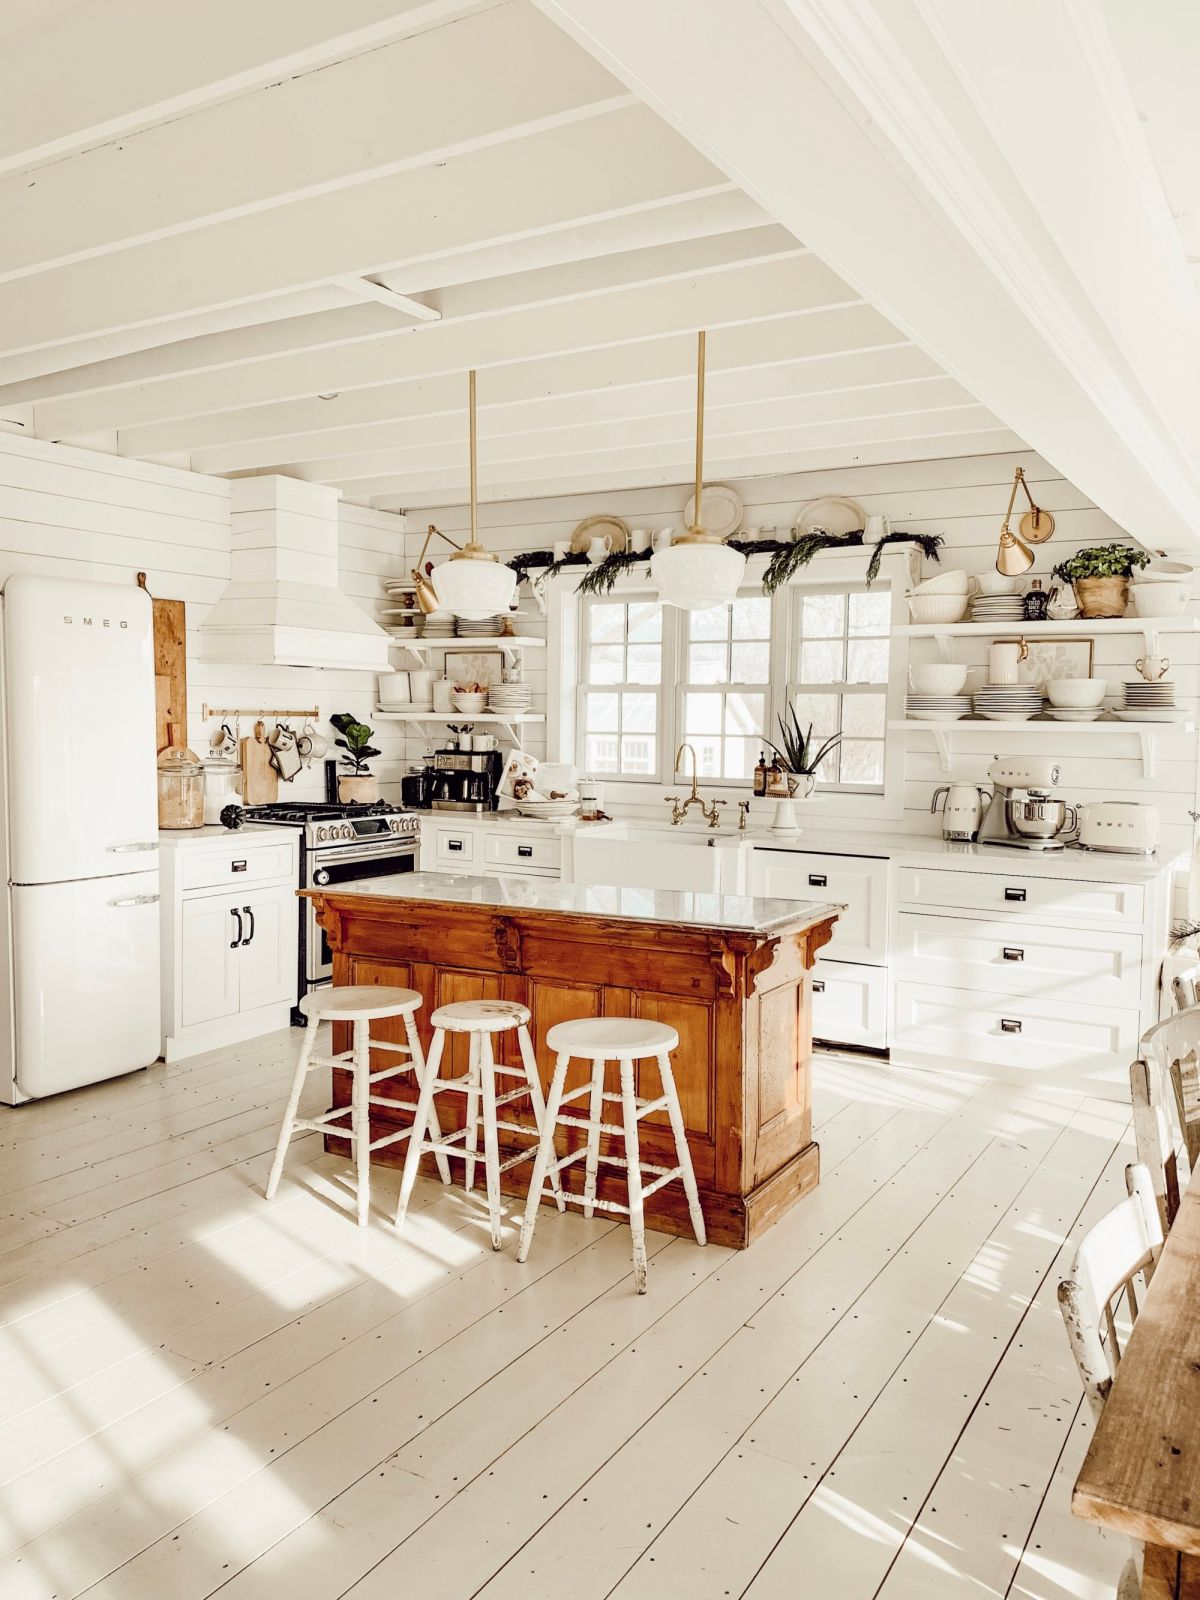 How to get the Farmhouse Style Kitchen